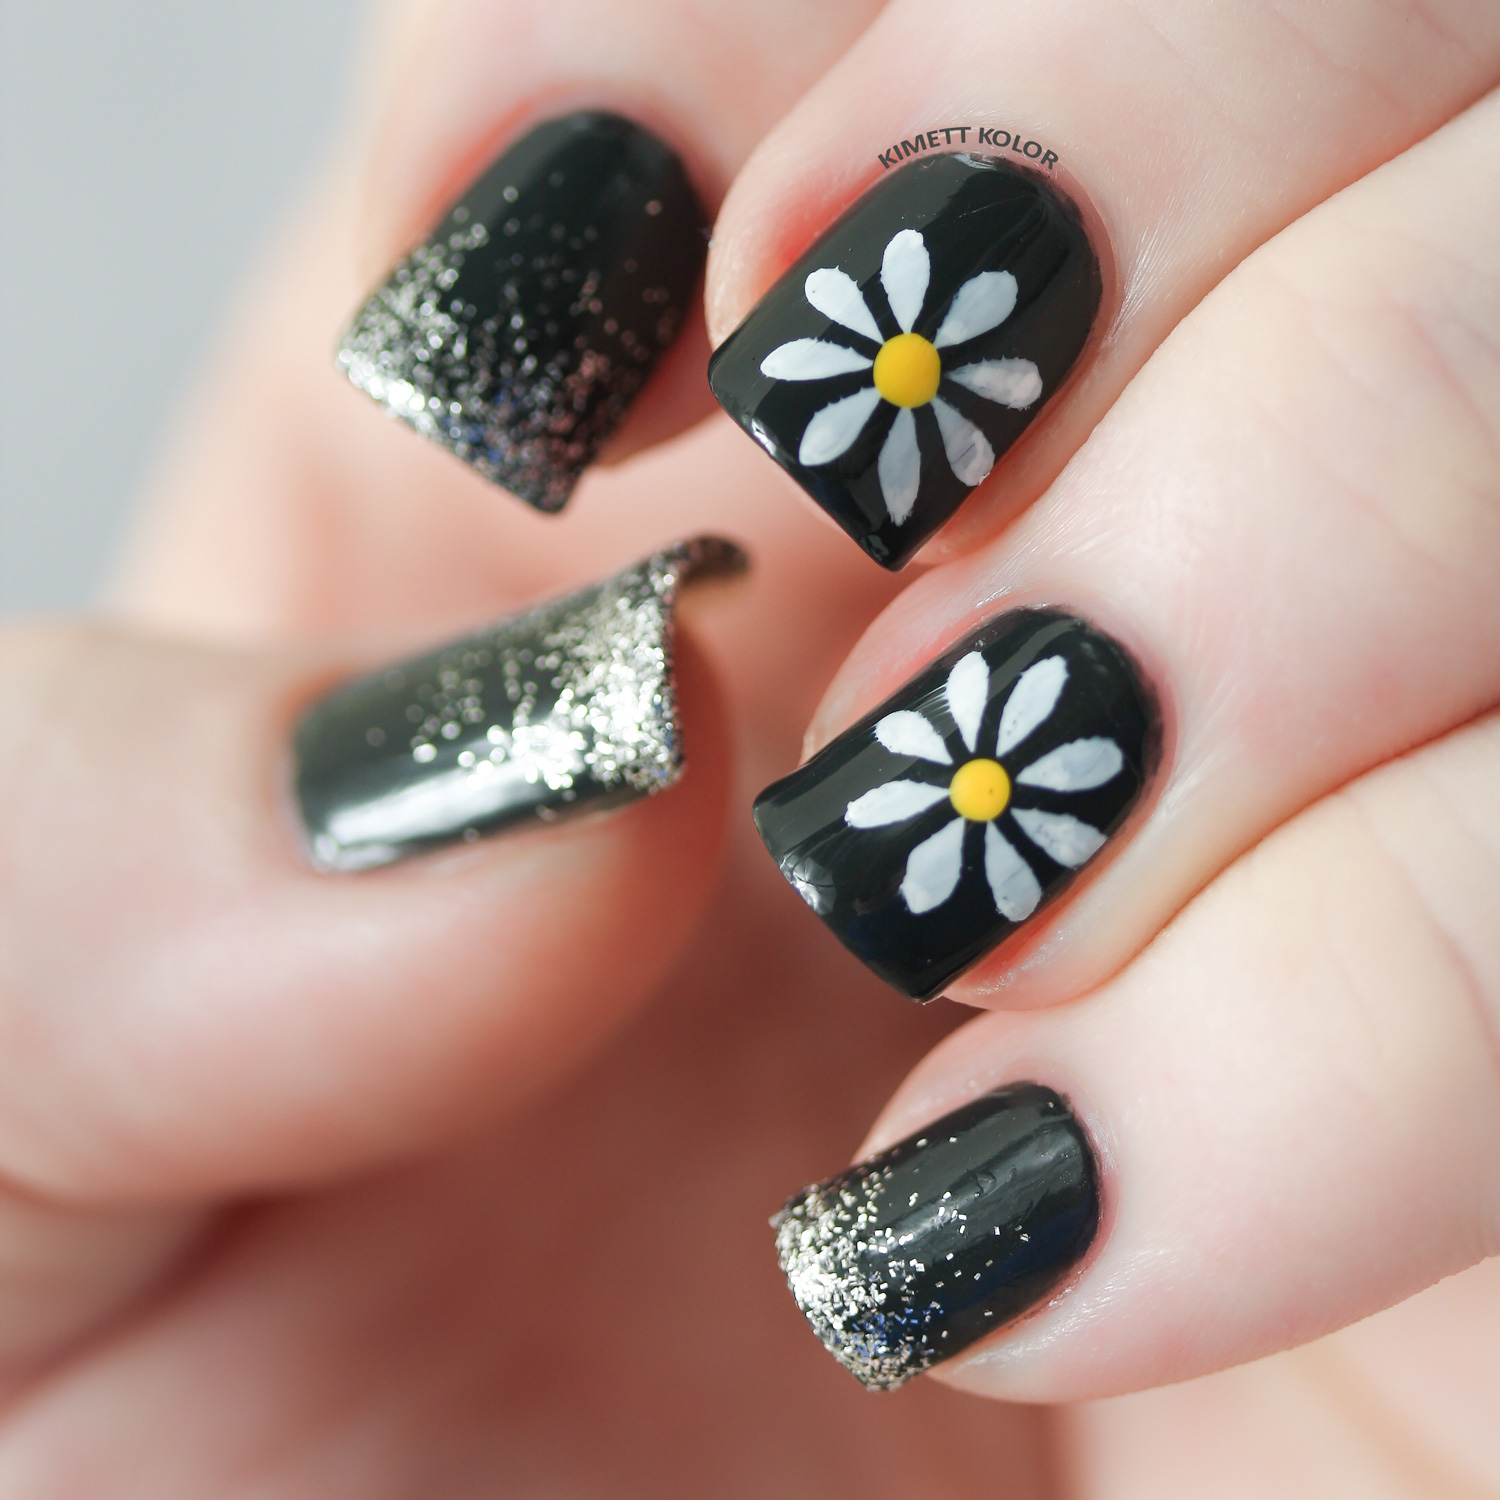 Nail Ideas For April: Nail Art For Every Month Of The Year